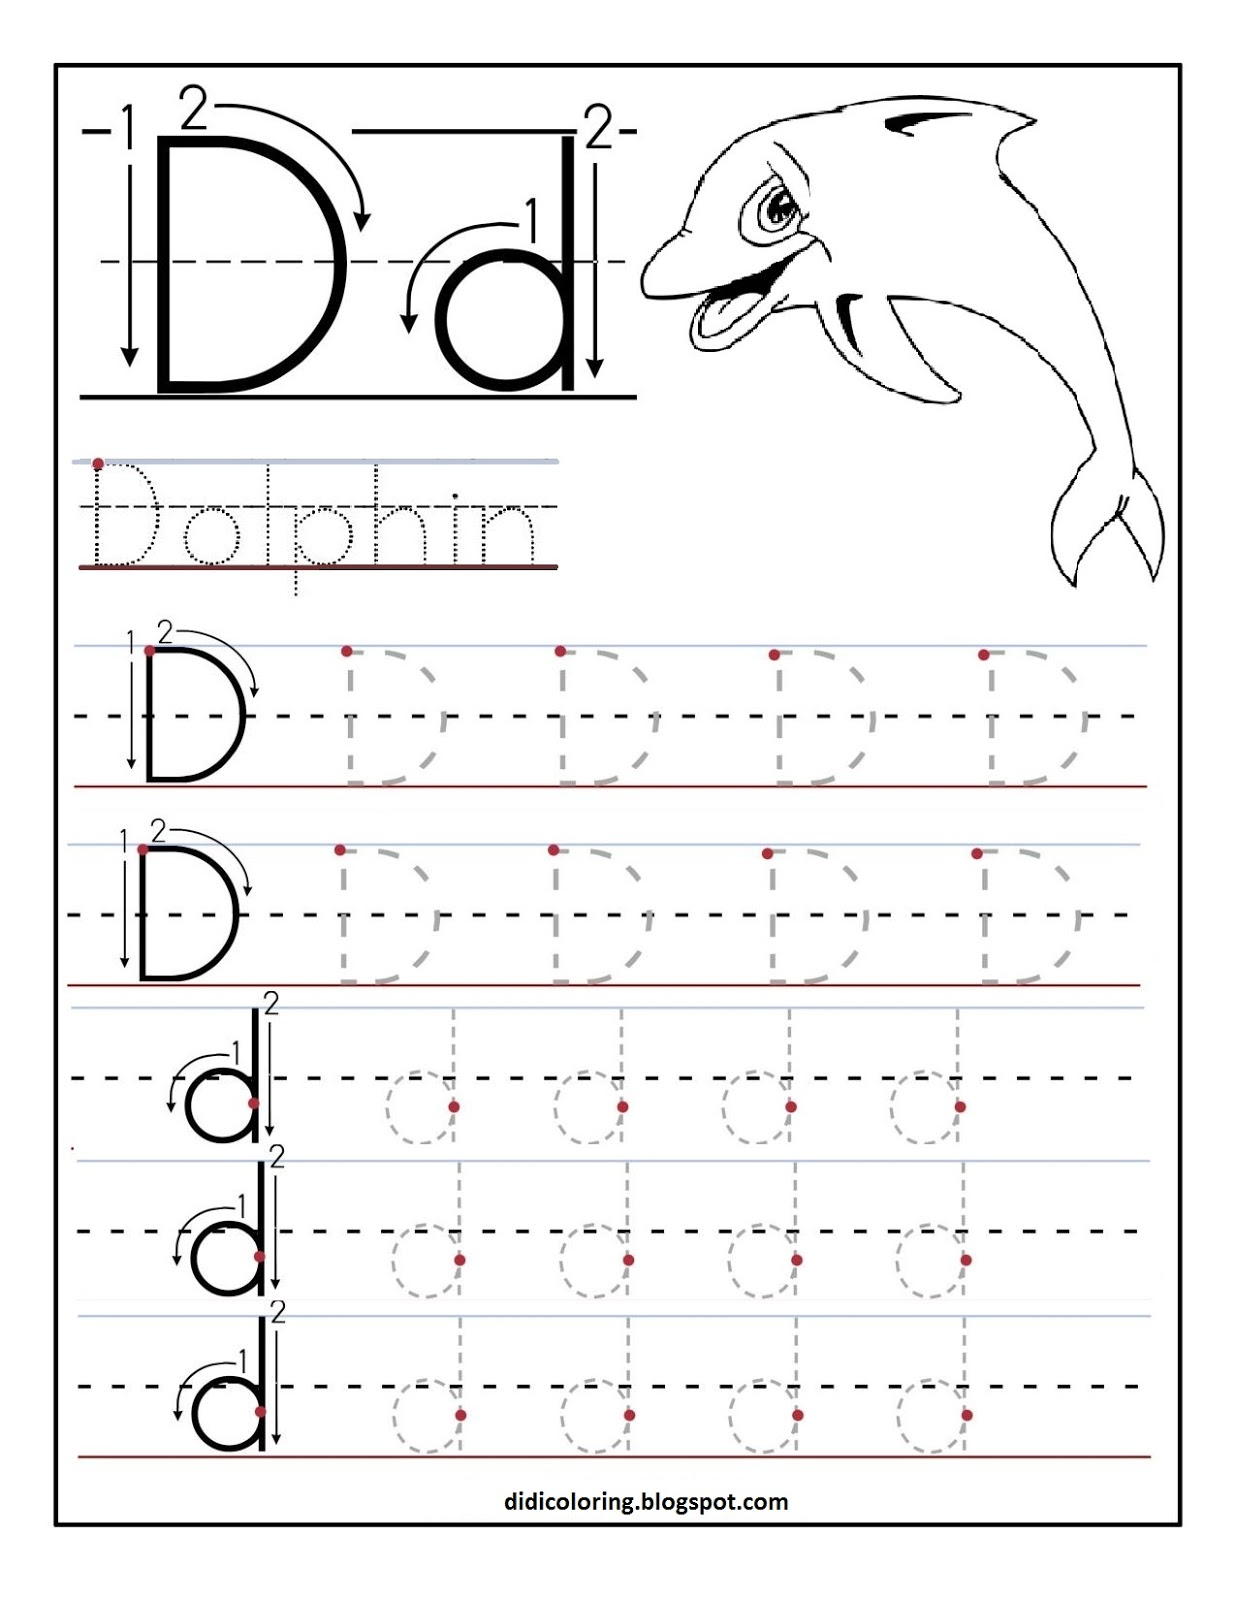 Free printable worksheet letter D for your child to learn and ...